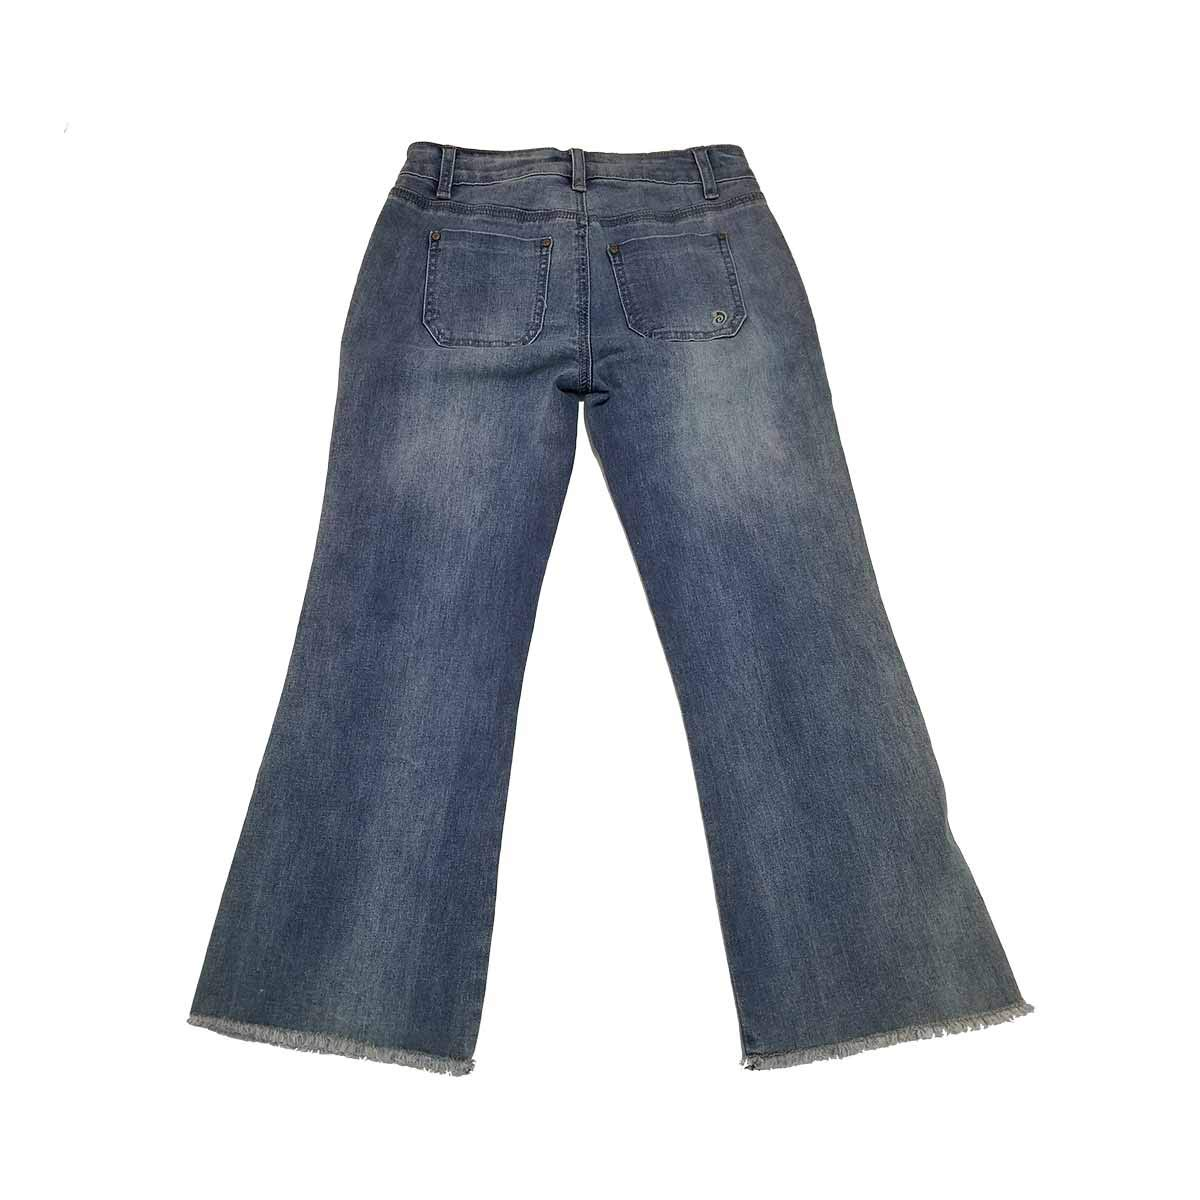 79b4b56dc5f Indigo Rein Junior Size Jeans 1 Button Fly Crop Slim Leg w  Topstitch Blue  at Amazon Women s Jeans store